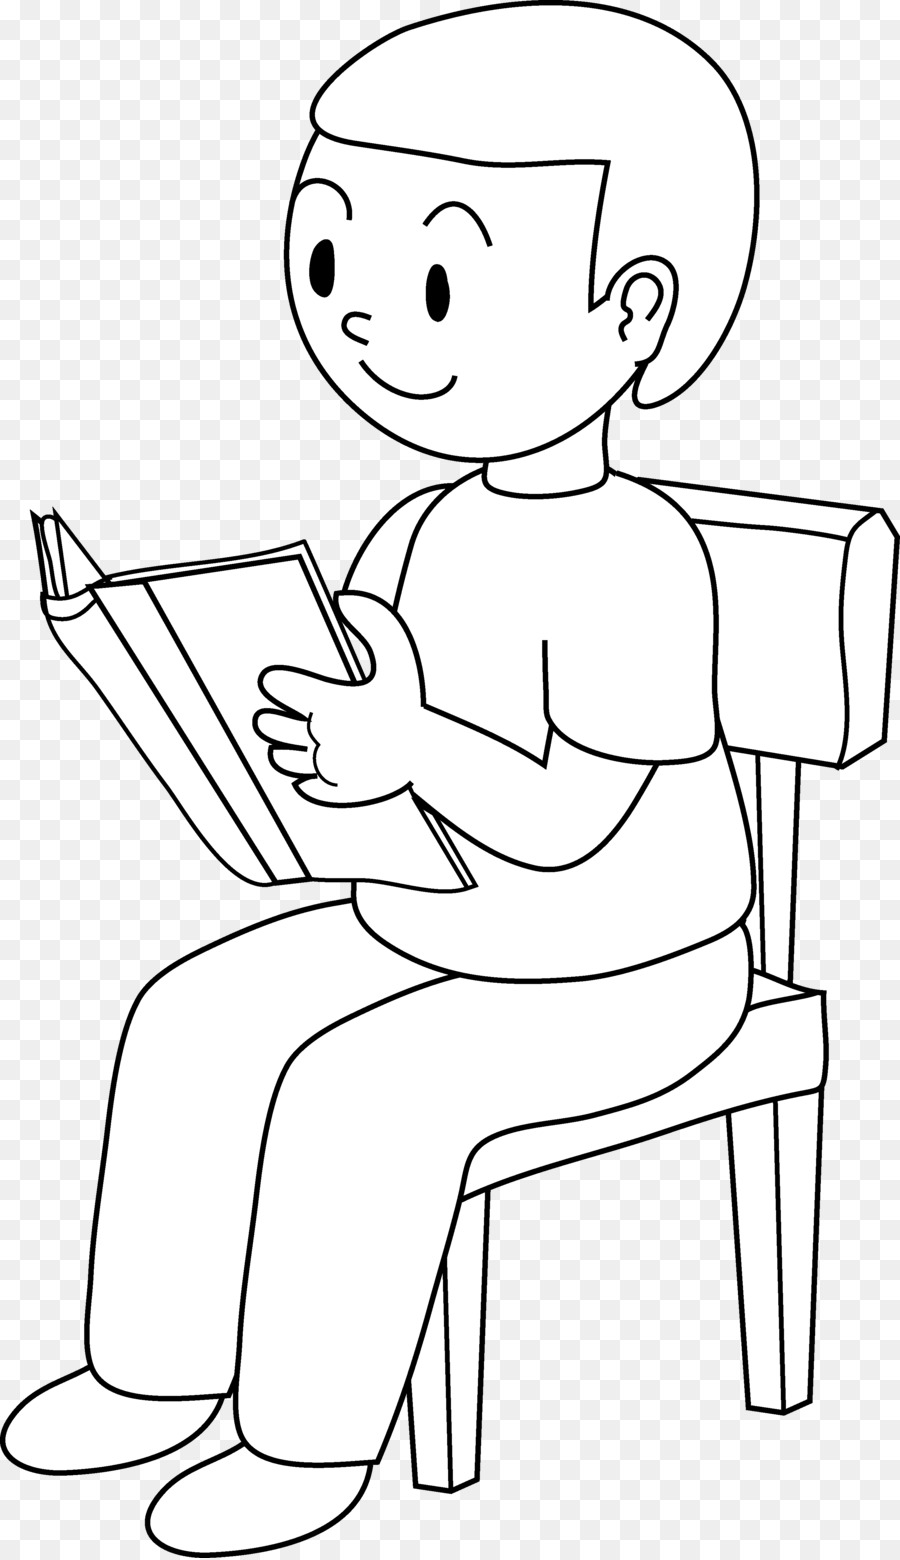 Clipart chair boy sitting clipart stock Png African American Boy Sitting On Chair & Free African American ... clipart stock